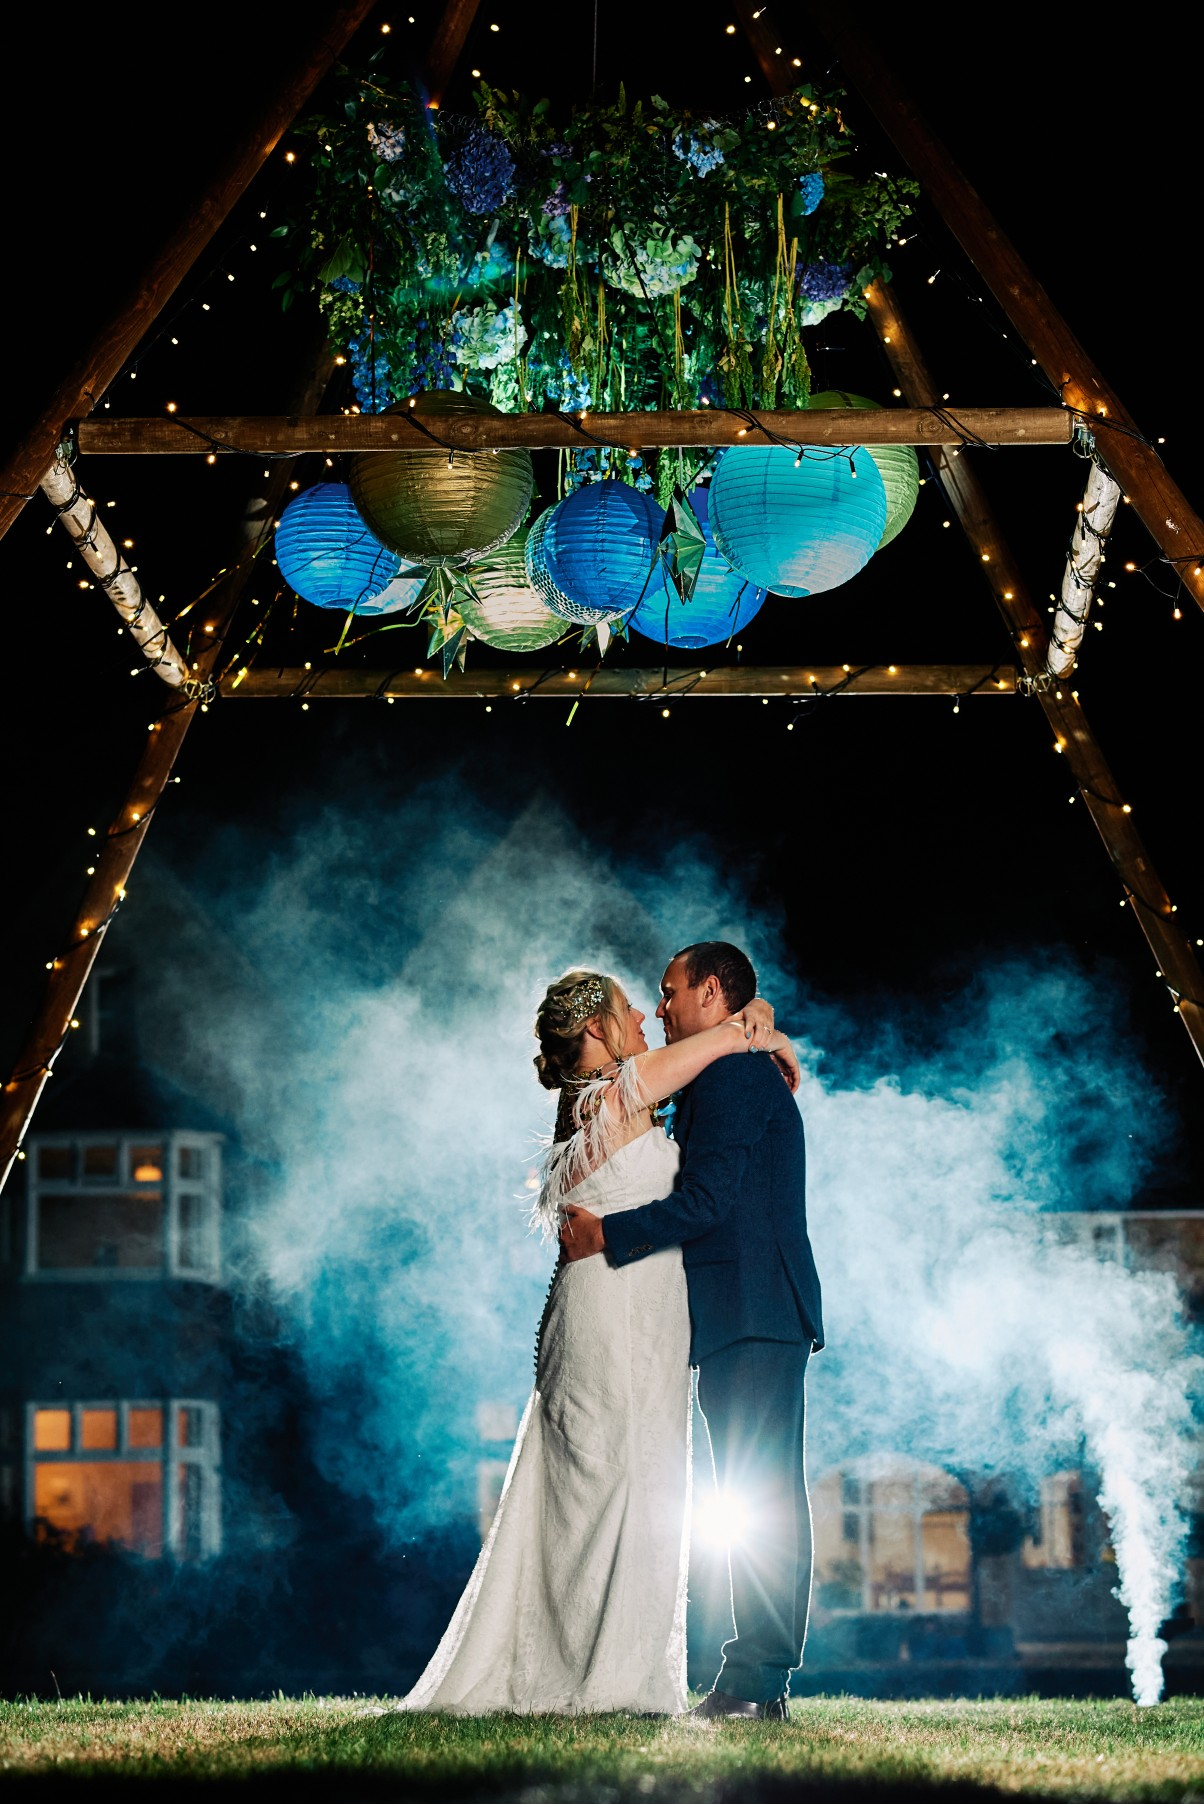 nhs wedding - paramedic wedding - blue and gold wedding - outdoor wedding - micro wedding - surprise wedding - wedding smoke bomb